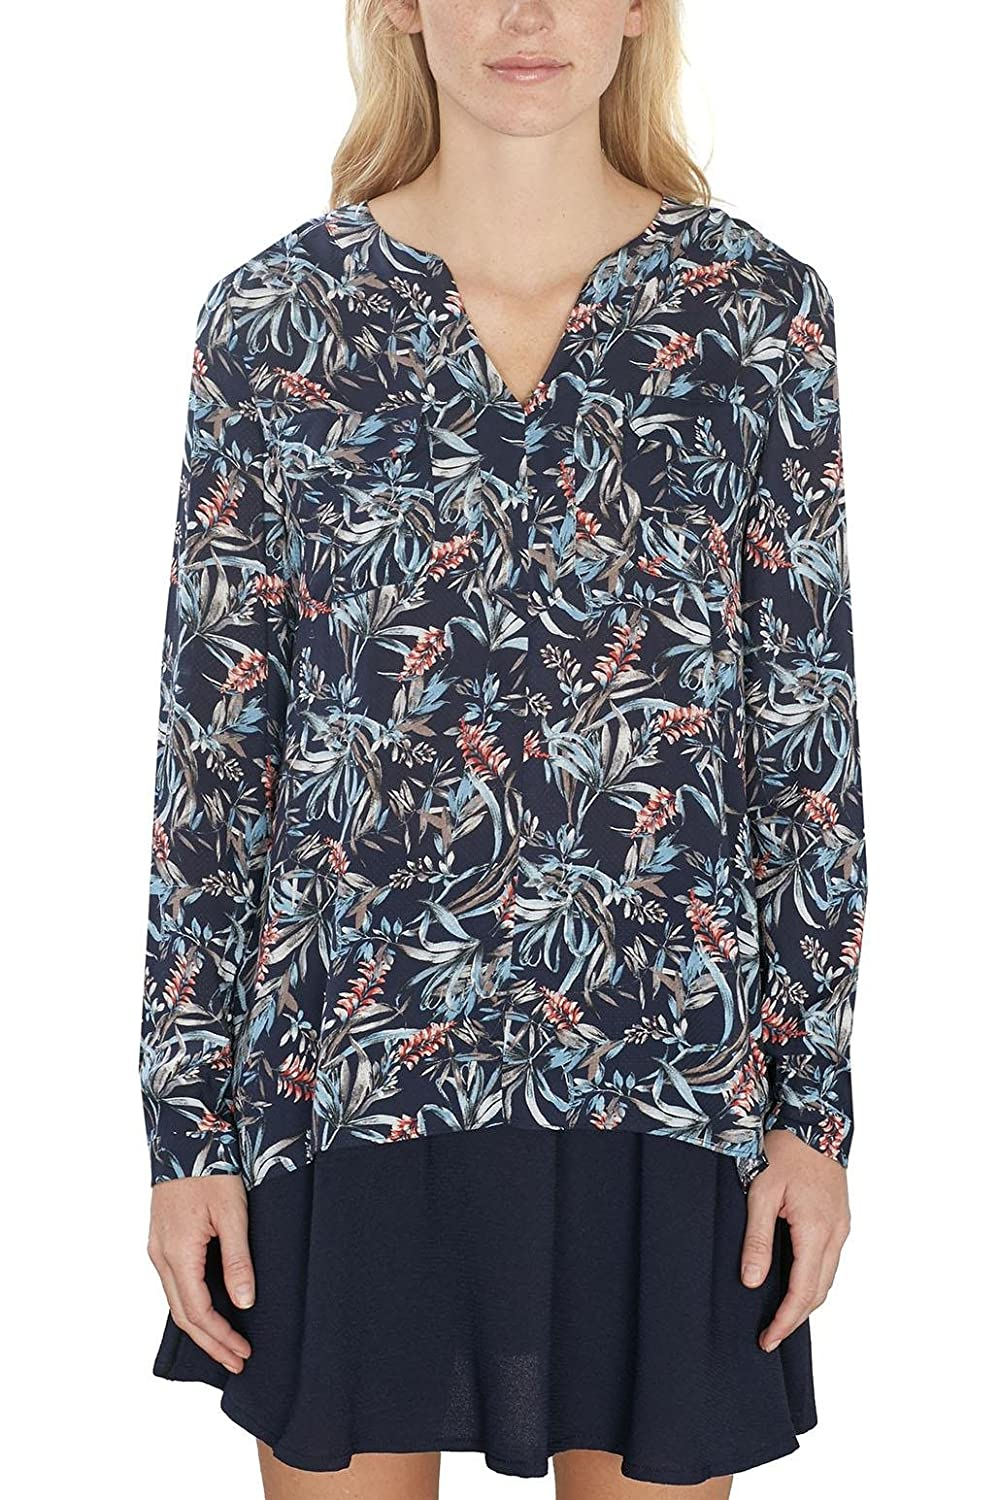 ESPRIT Collection Blusa para Mujer